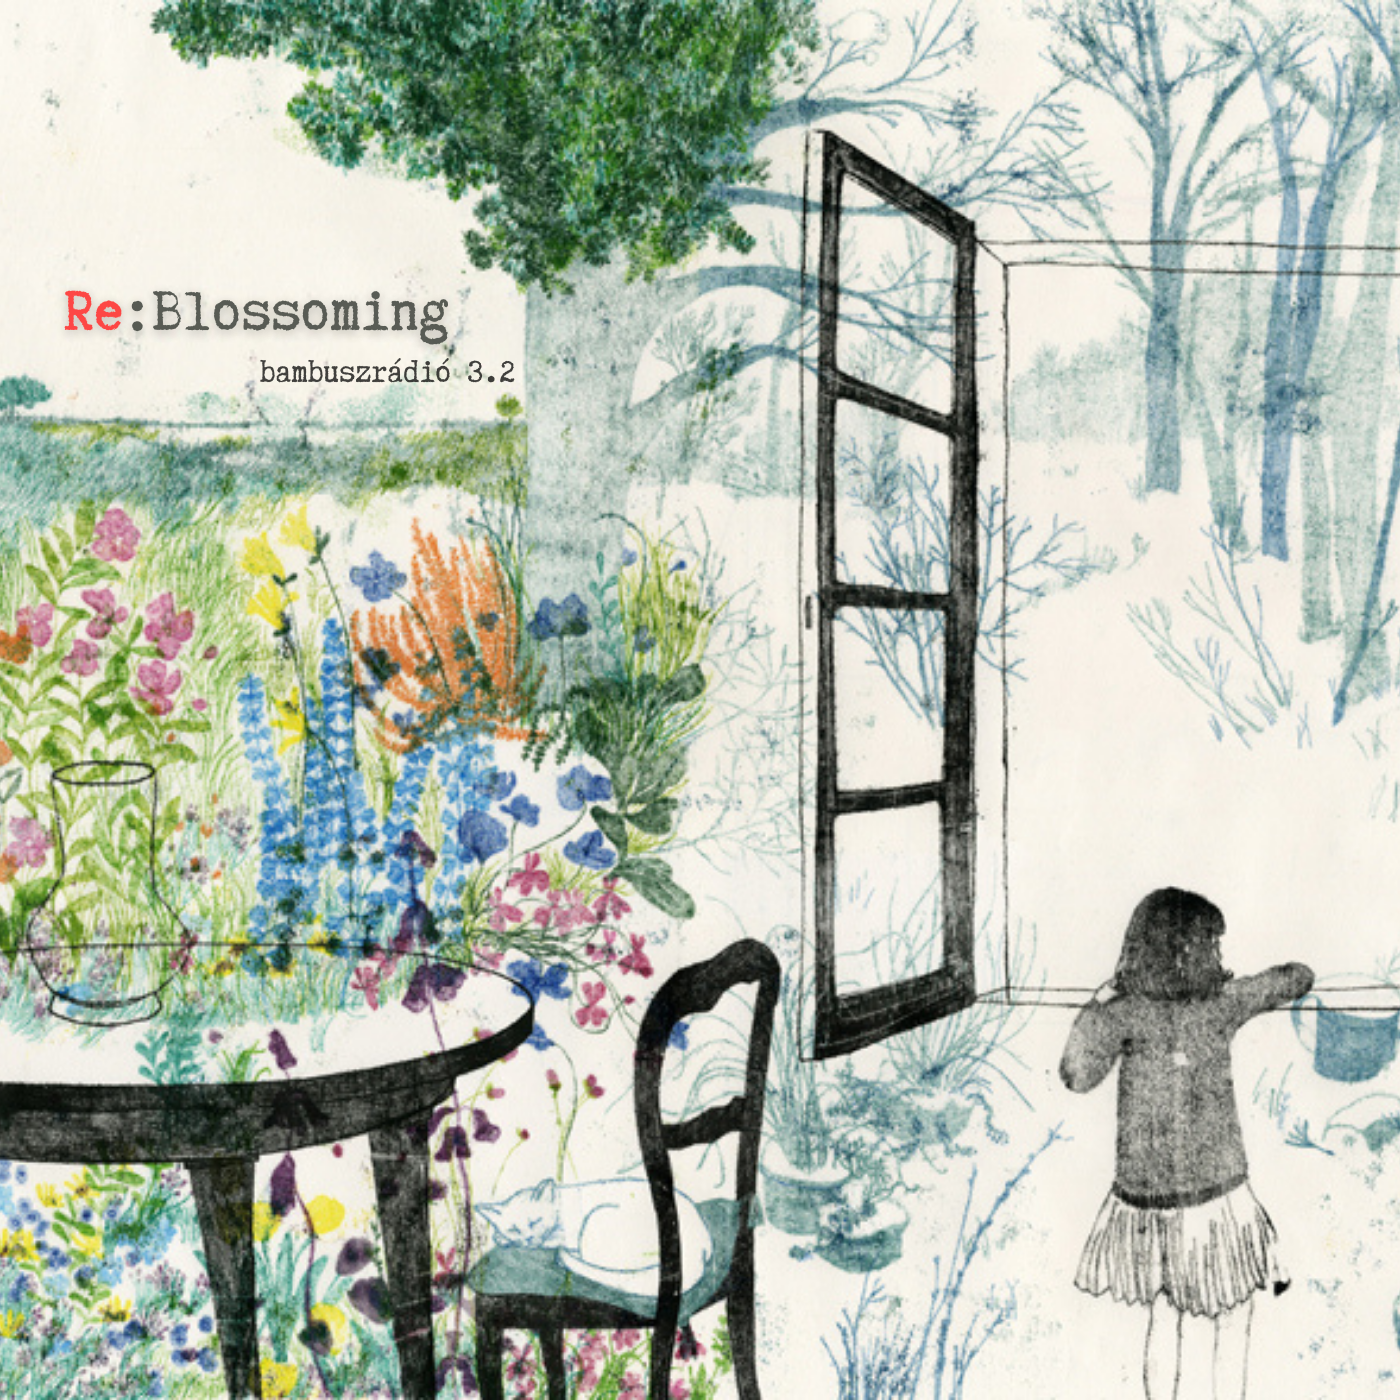 3.2 - Re:Blossoming